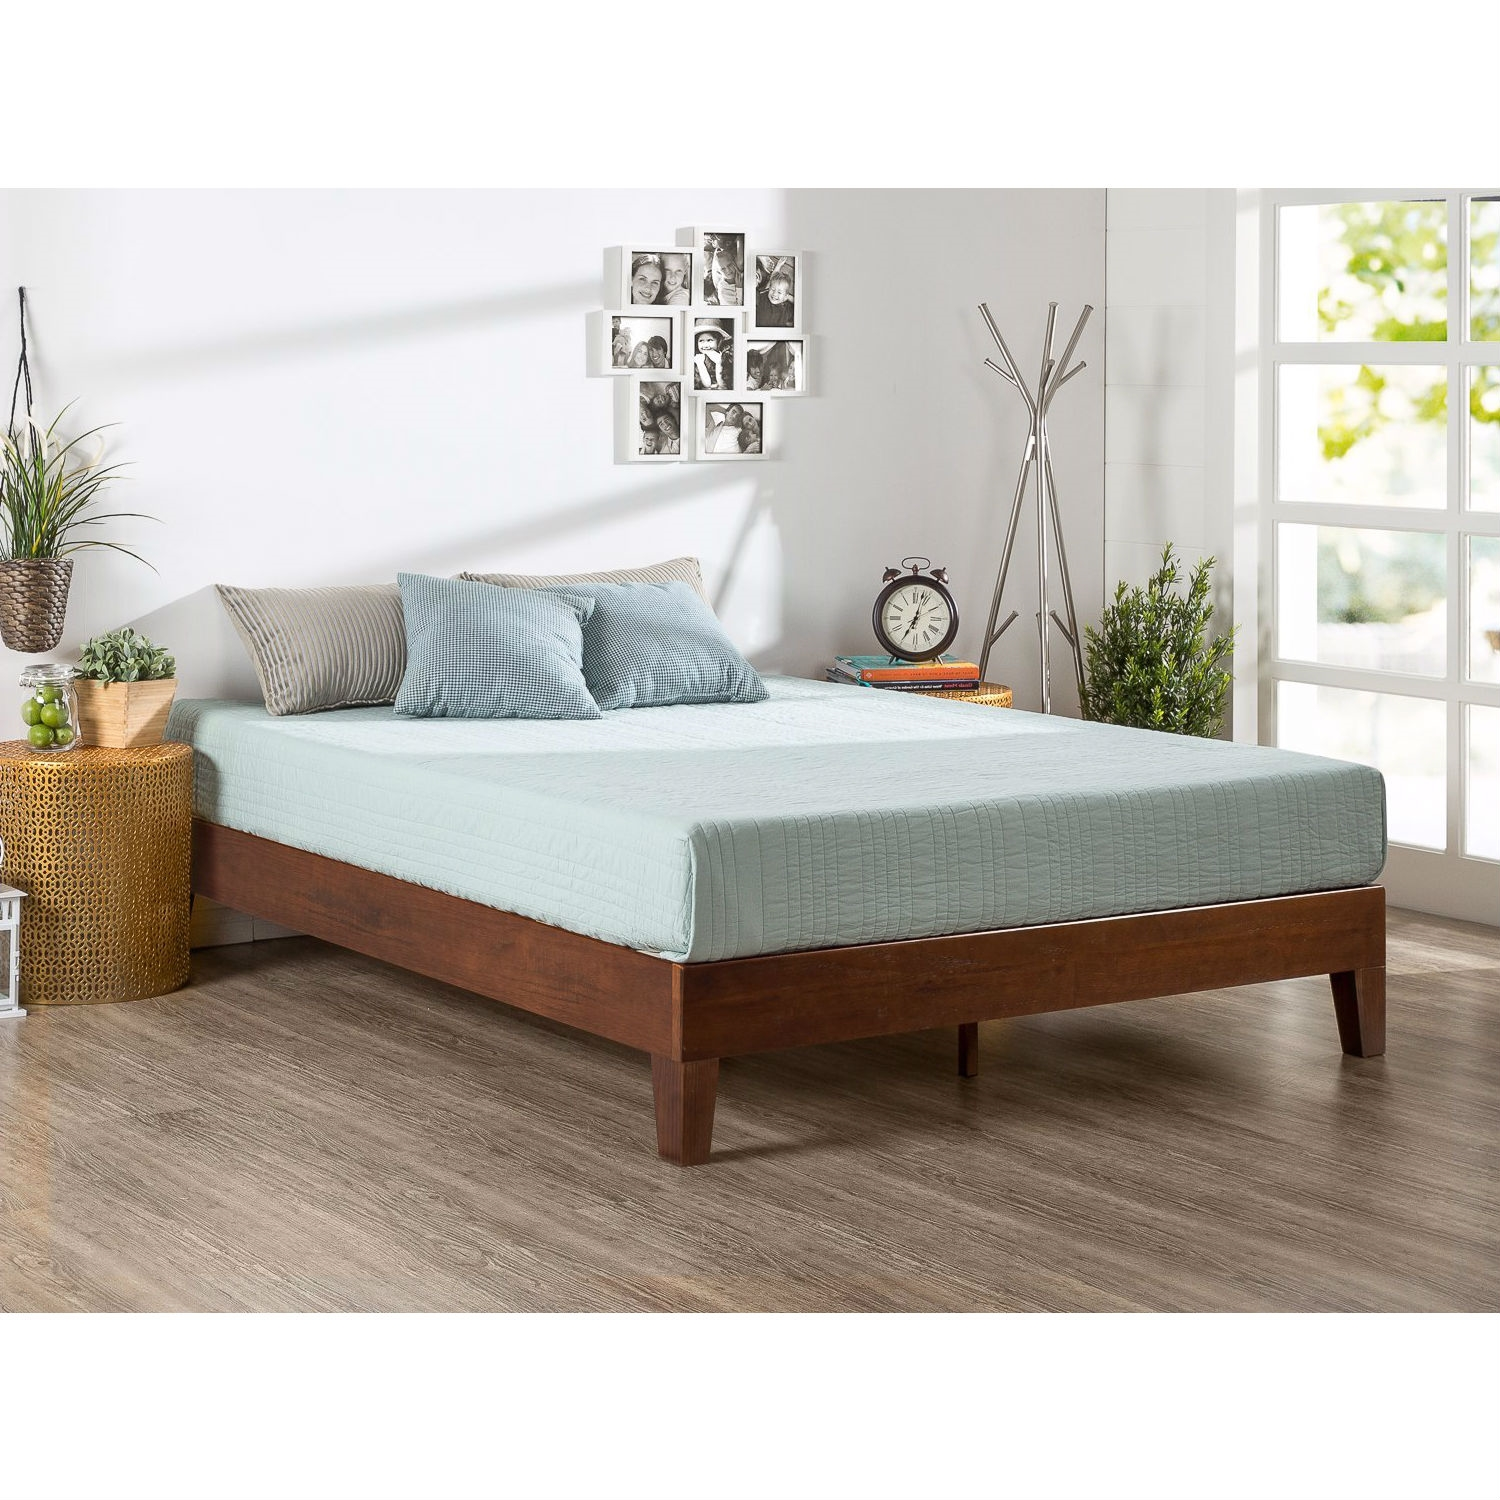 Full size Low Profile Solid Wood Platform Bed Frame in Espresso ...